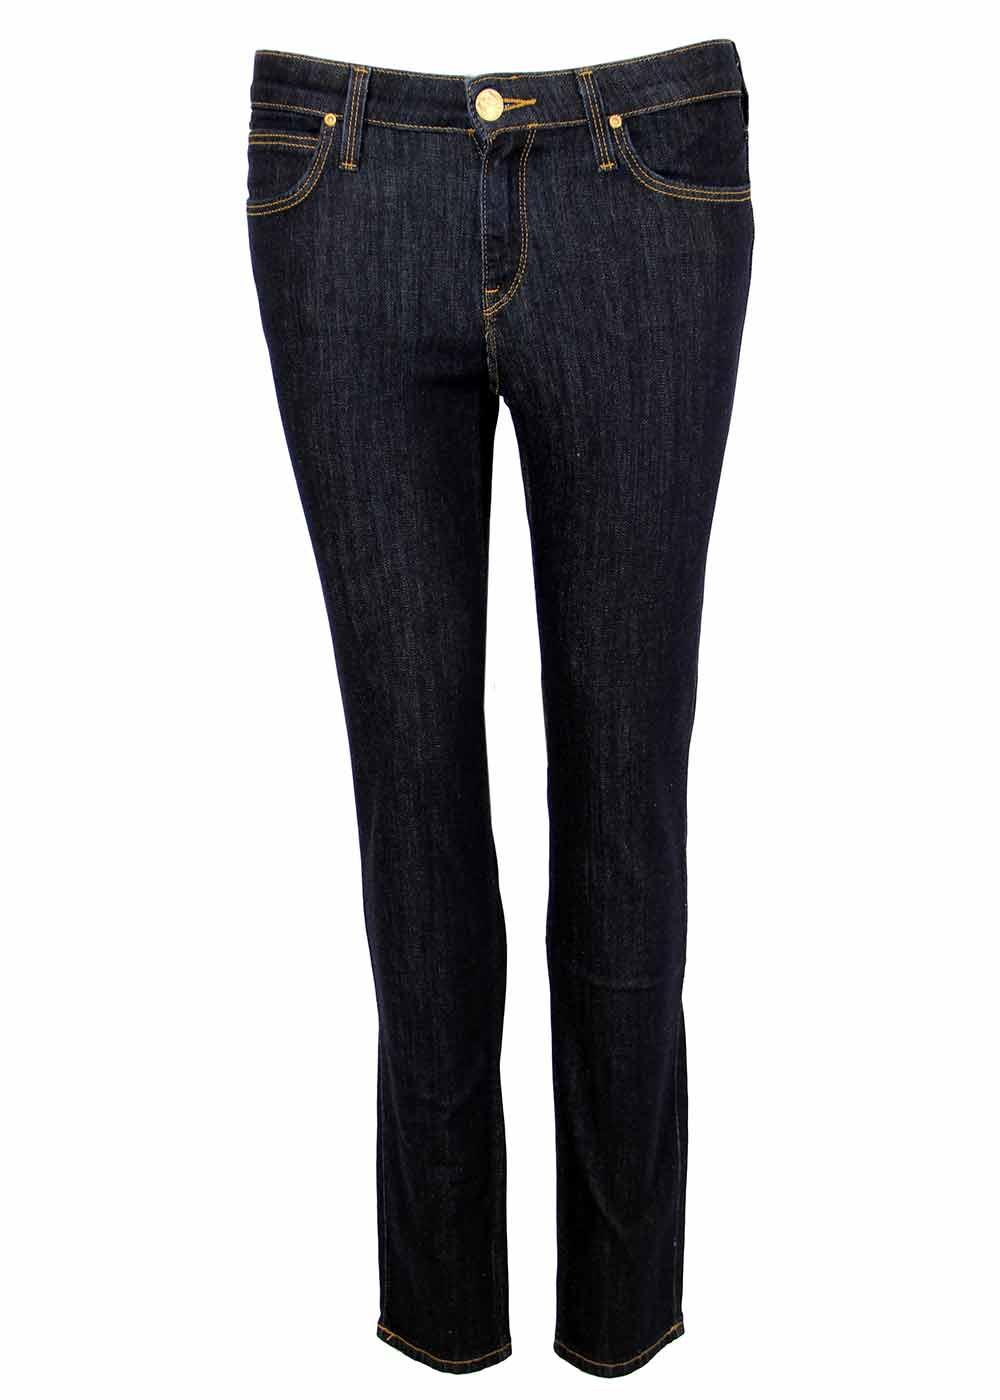 Scarlett LEE Retro Stretch Deluxe Skinny Jeans OW